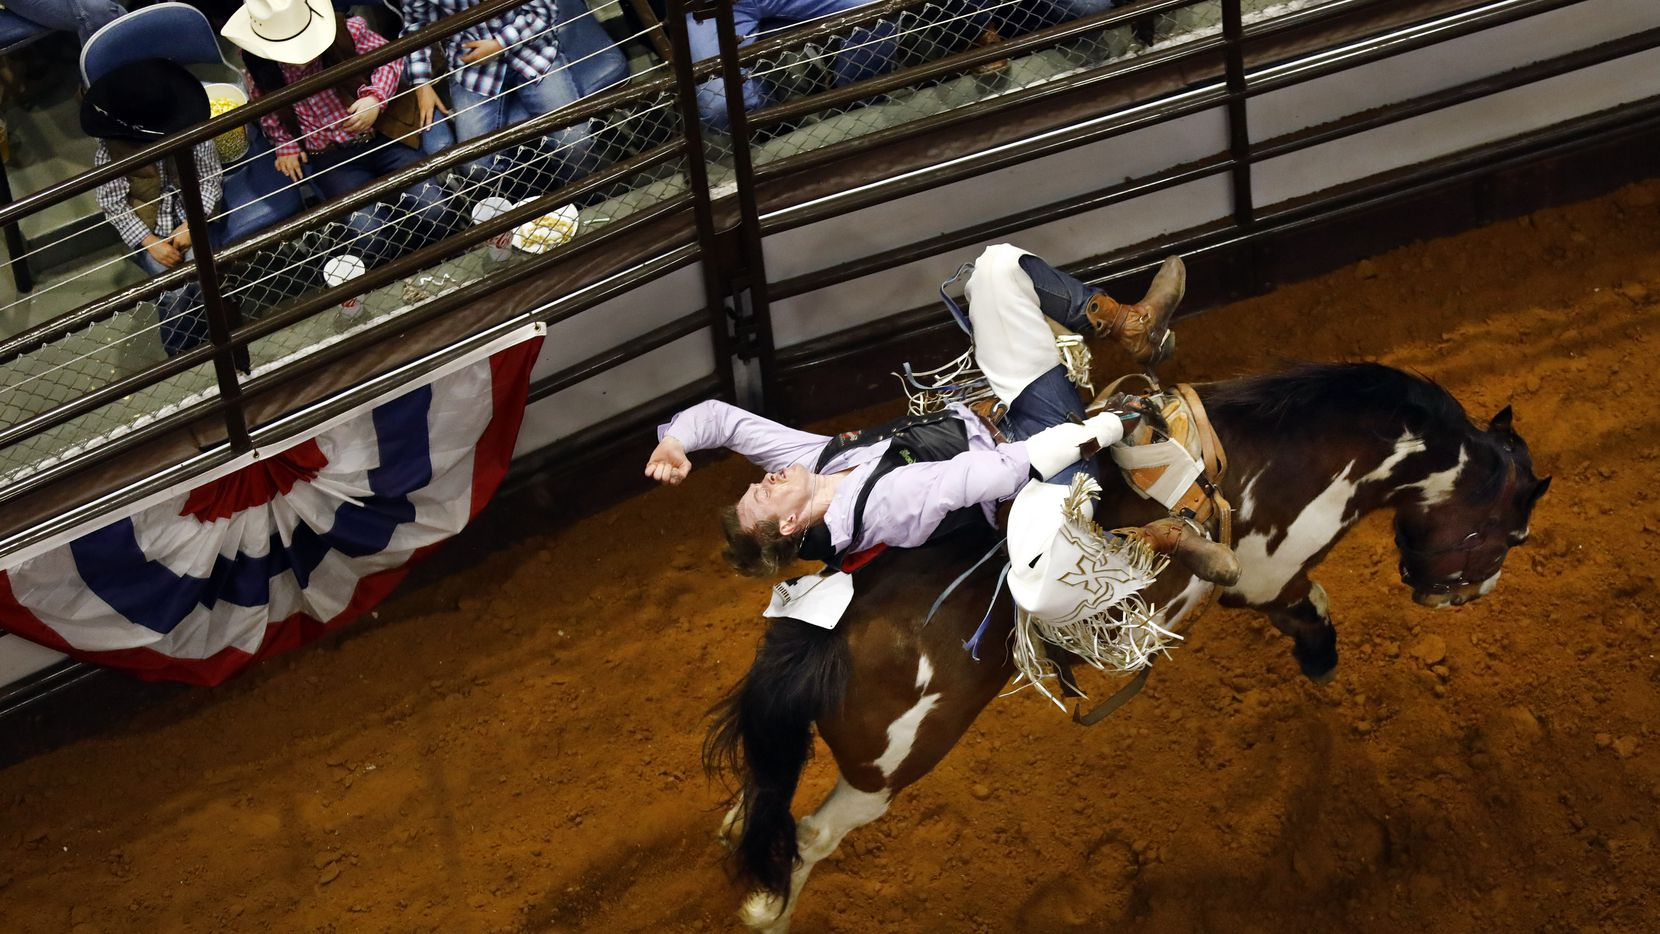 Bareback riding horse Jeopardy tries to buck off contestant Wyatt Bloom, of Bozeman, MT, during a matinee performance at Will Rogers Memorial Coliseum, Friday, February 1, 2019 at the Fort Worth Stock Show and Rodeo in Fort Worth.